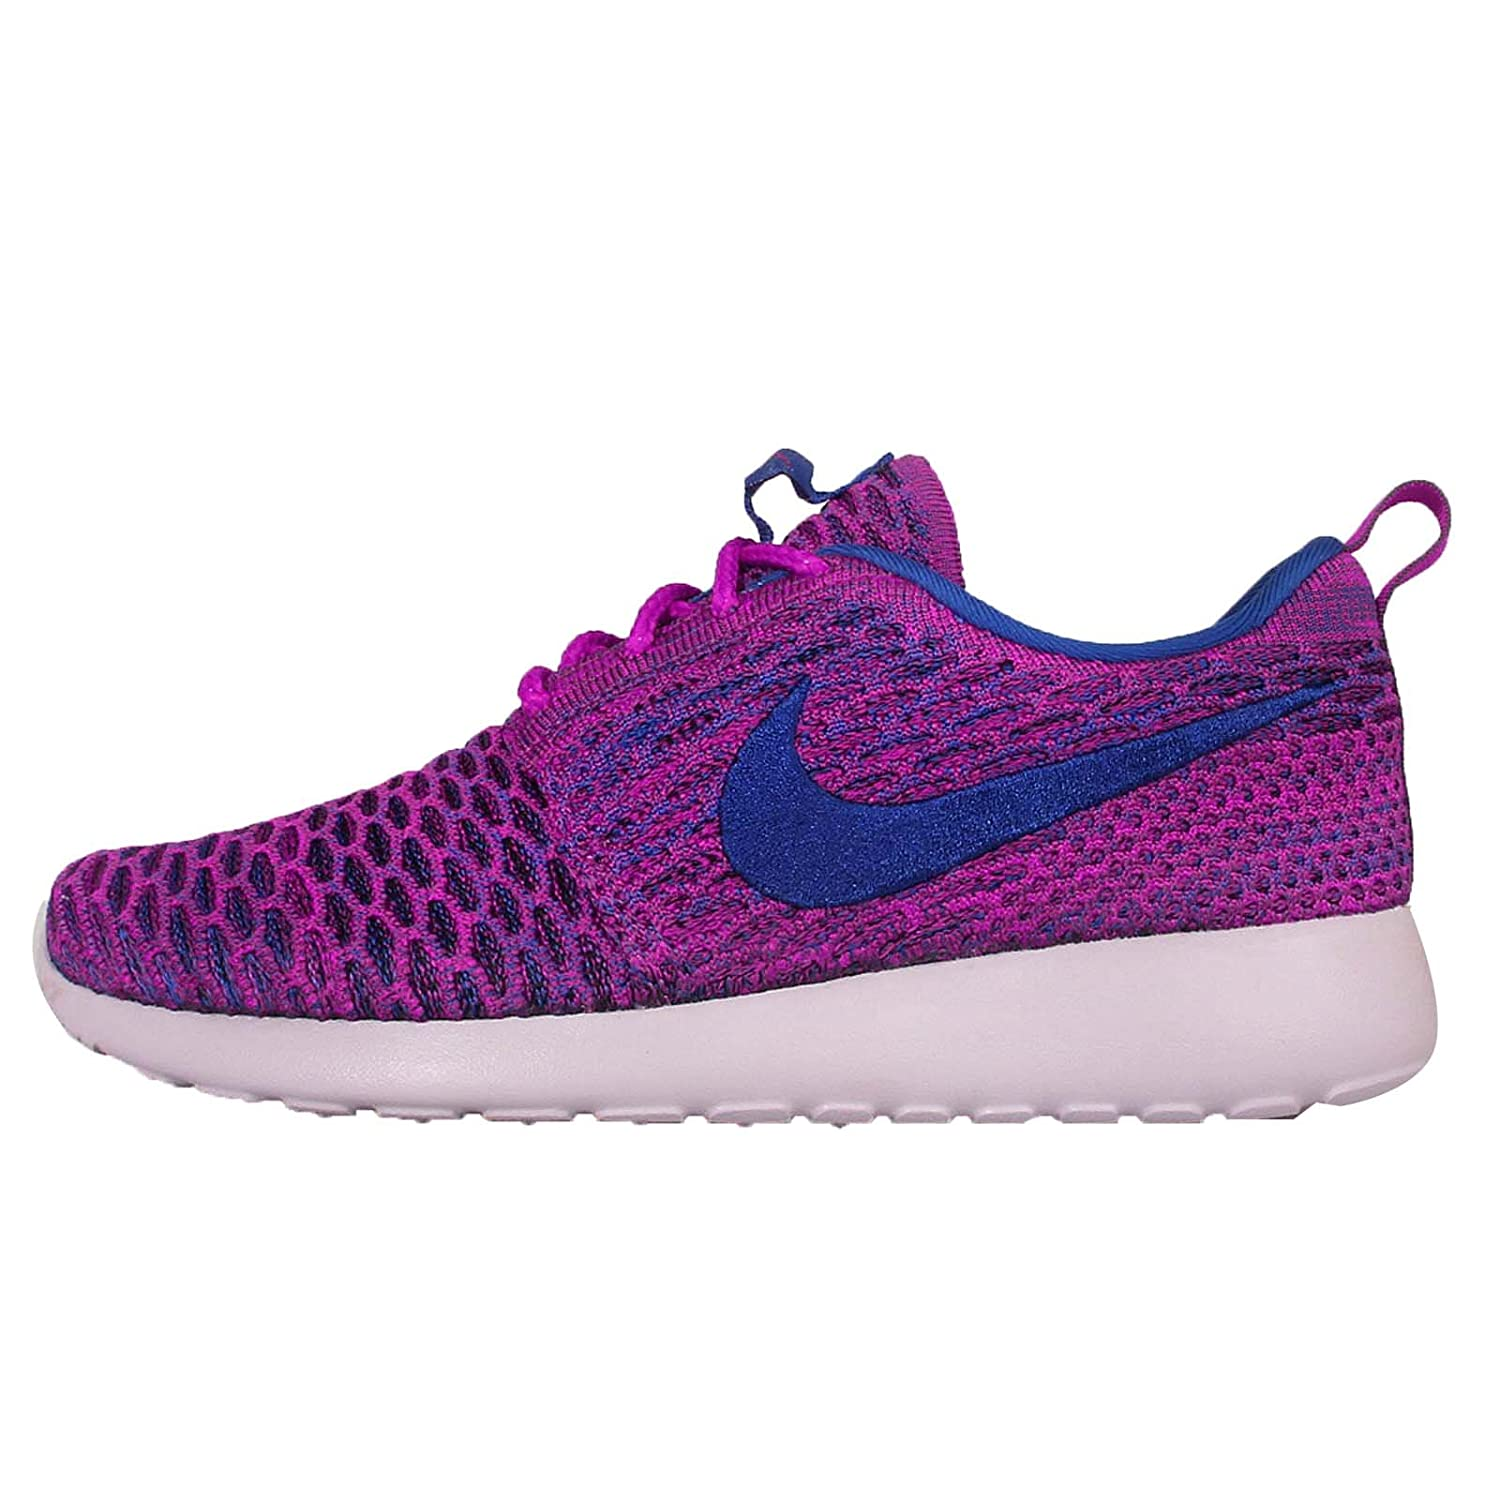 NIKE Womens Roshe One Flyknit Flyknit Colorblock Running Shoes B010JMD4QU 7.5 B(M) US|Fuchsia